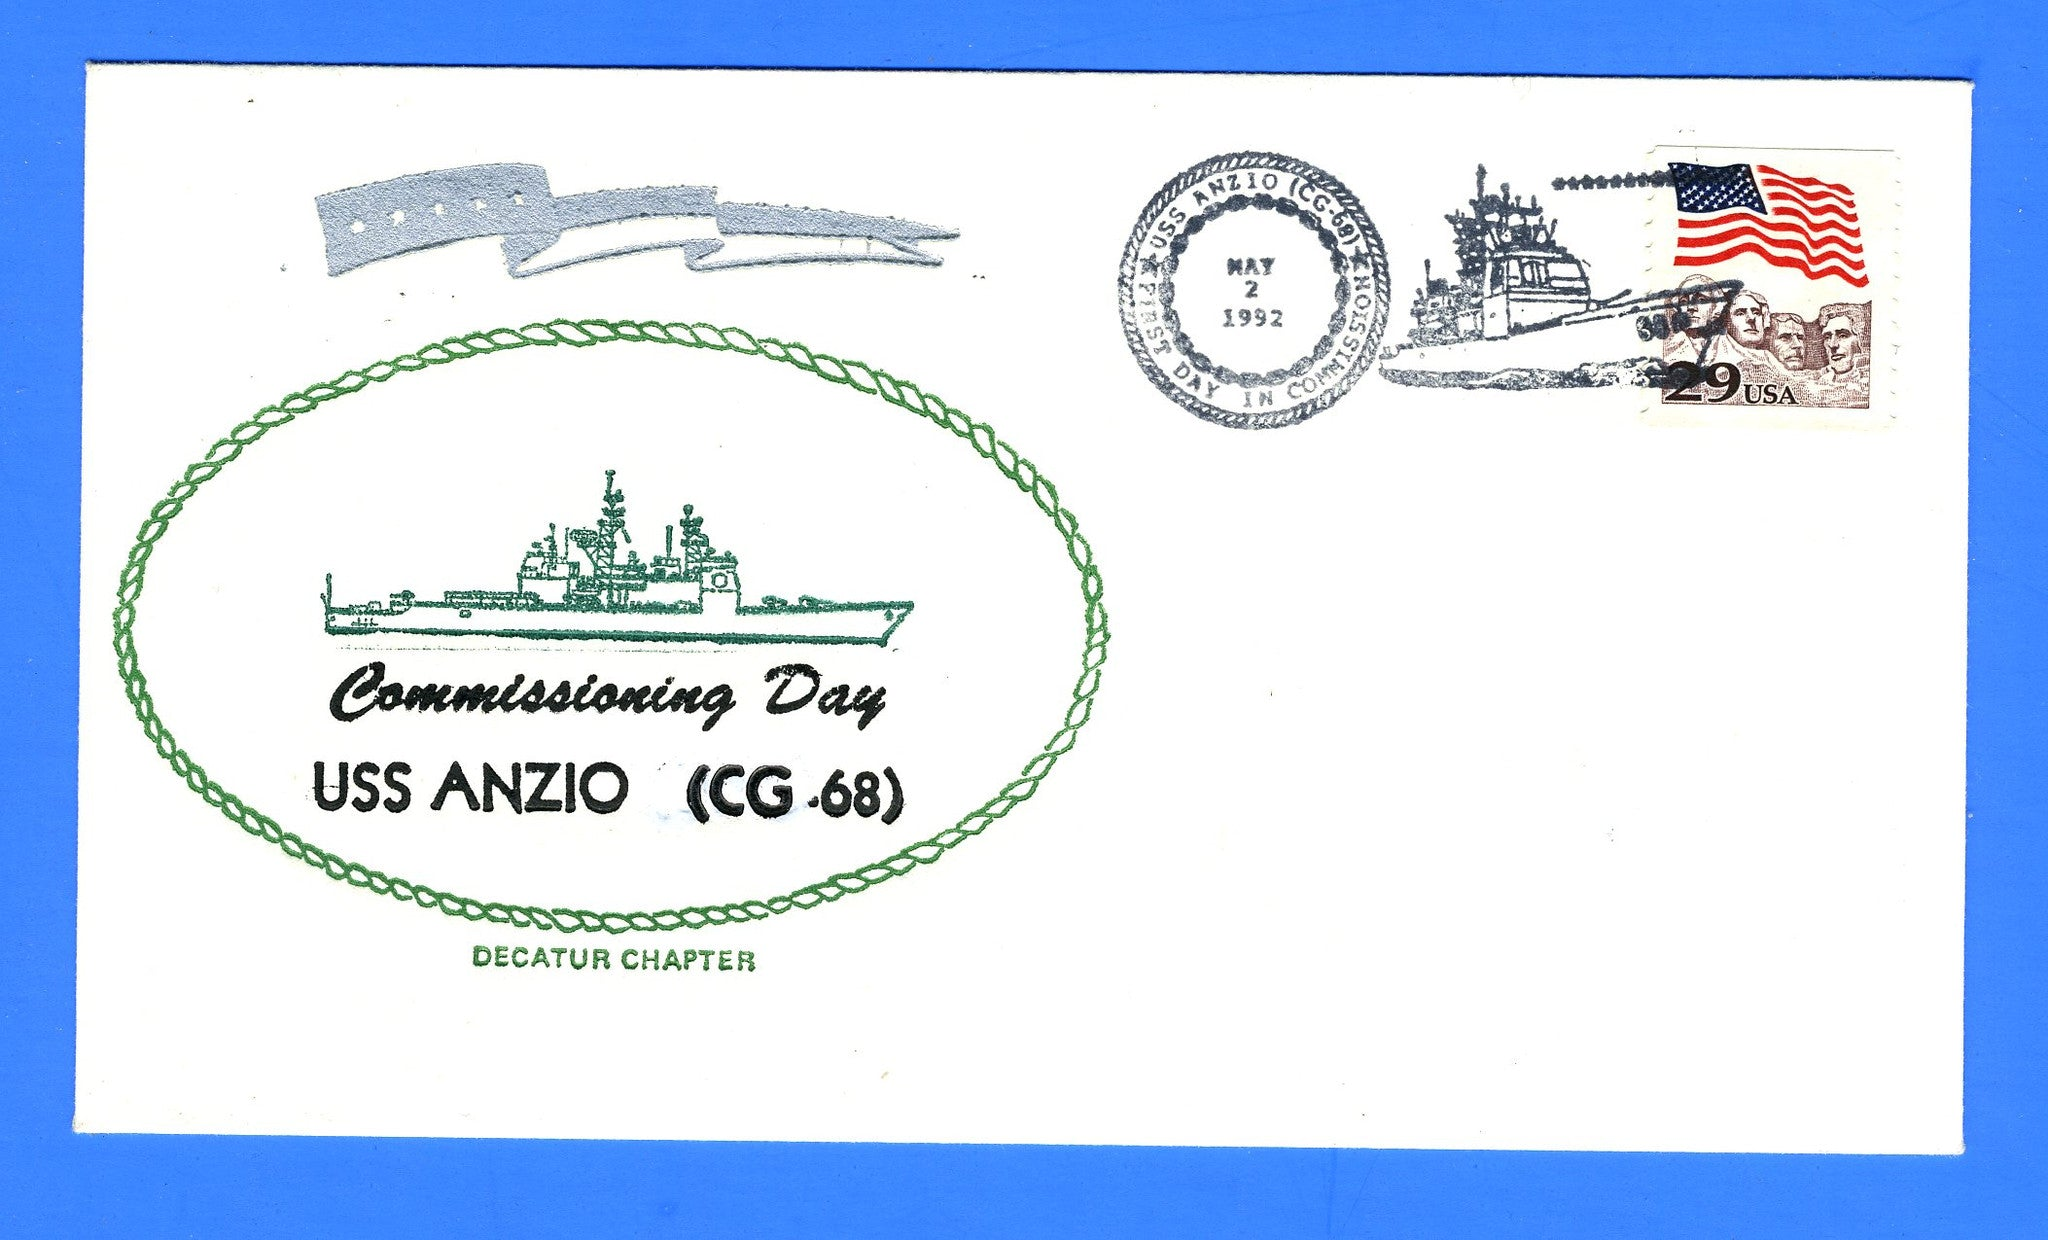 USS Anzio CG-68 Commissioning May 2, 1992 - Cachet by Decatur Chapter No. 4, USCS